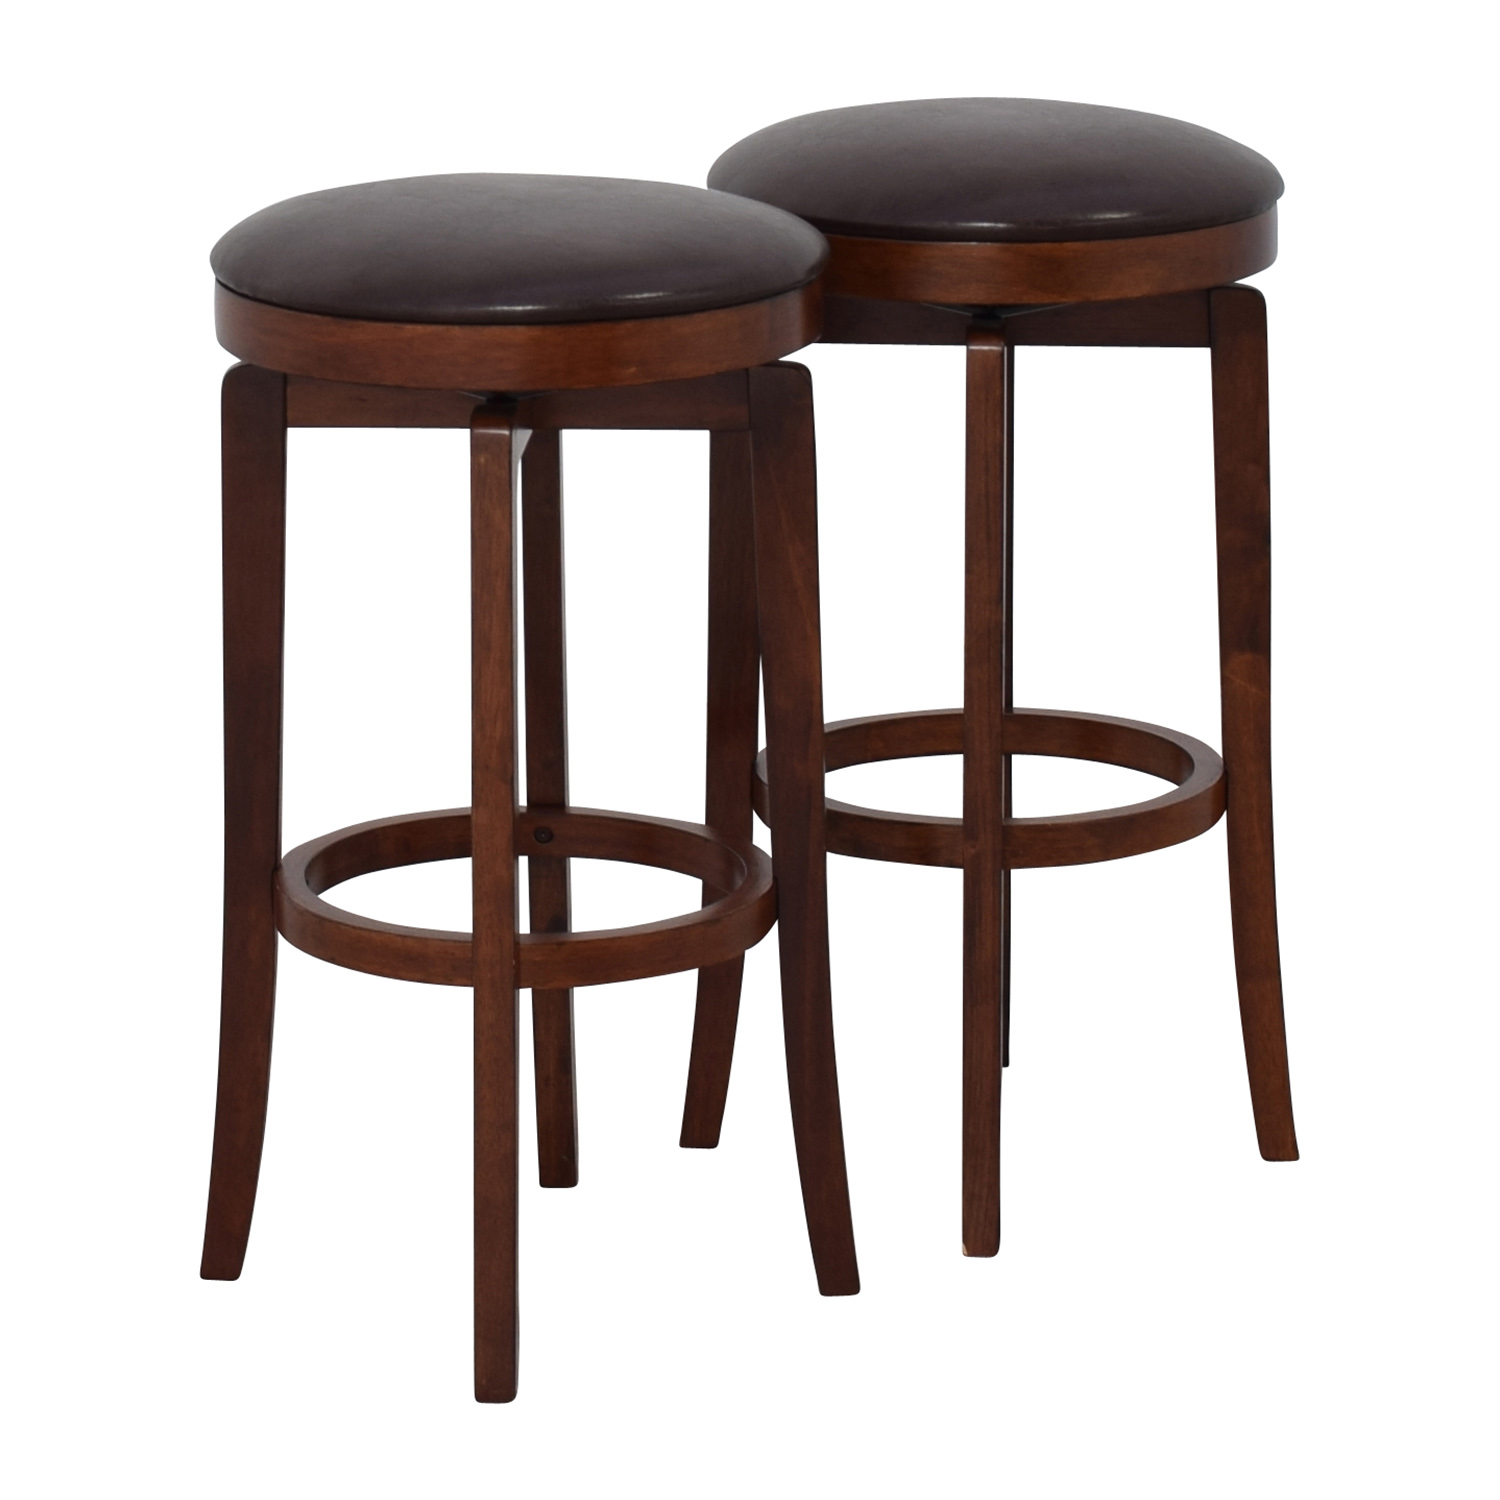 stool chair second hand pro gaming chairs uk 90 off jc penny malone backless leather swivel